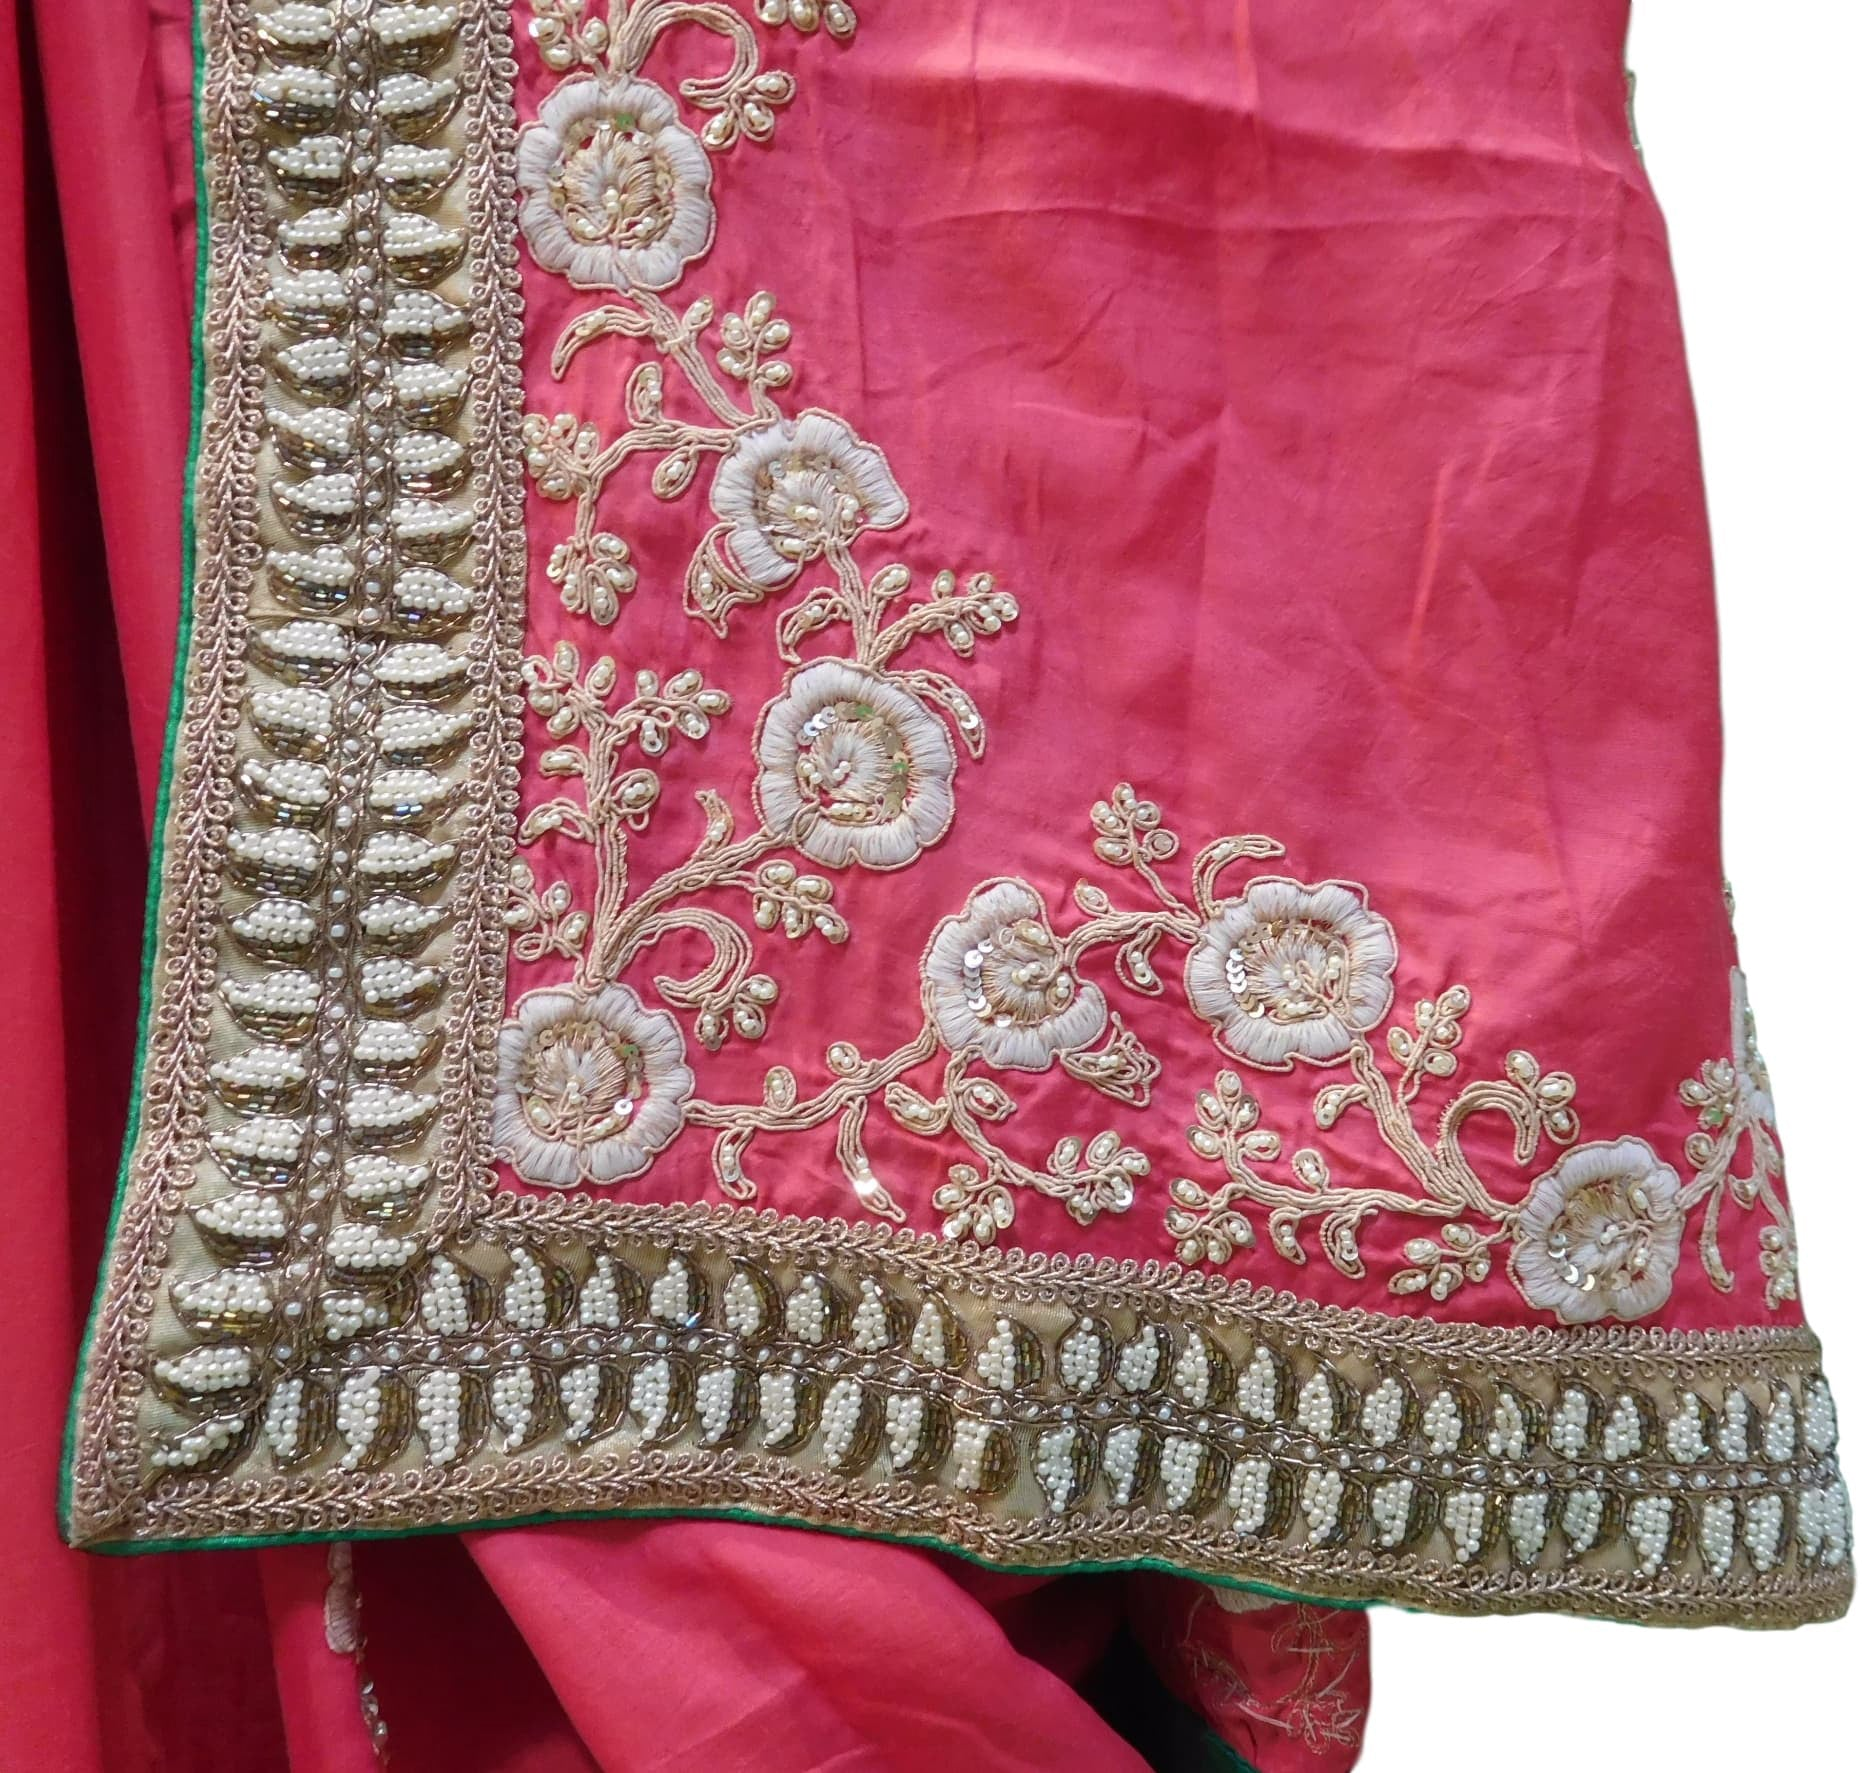 Pink Designer Georgette (Viscos) Hand Embroidery Work Sari Saree